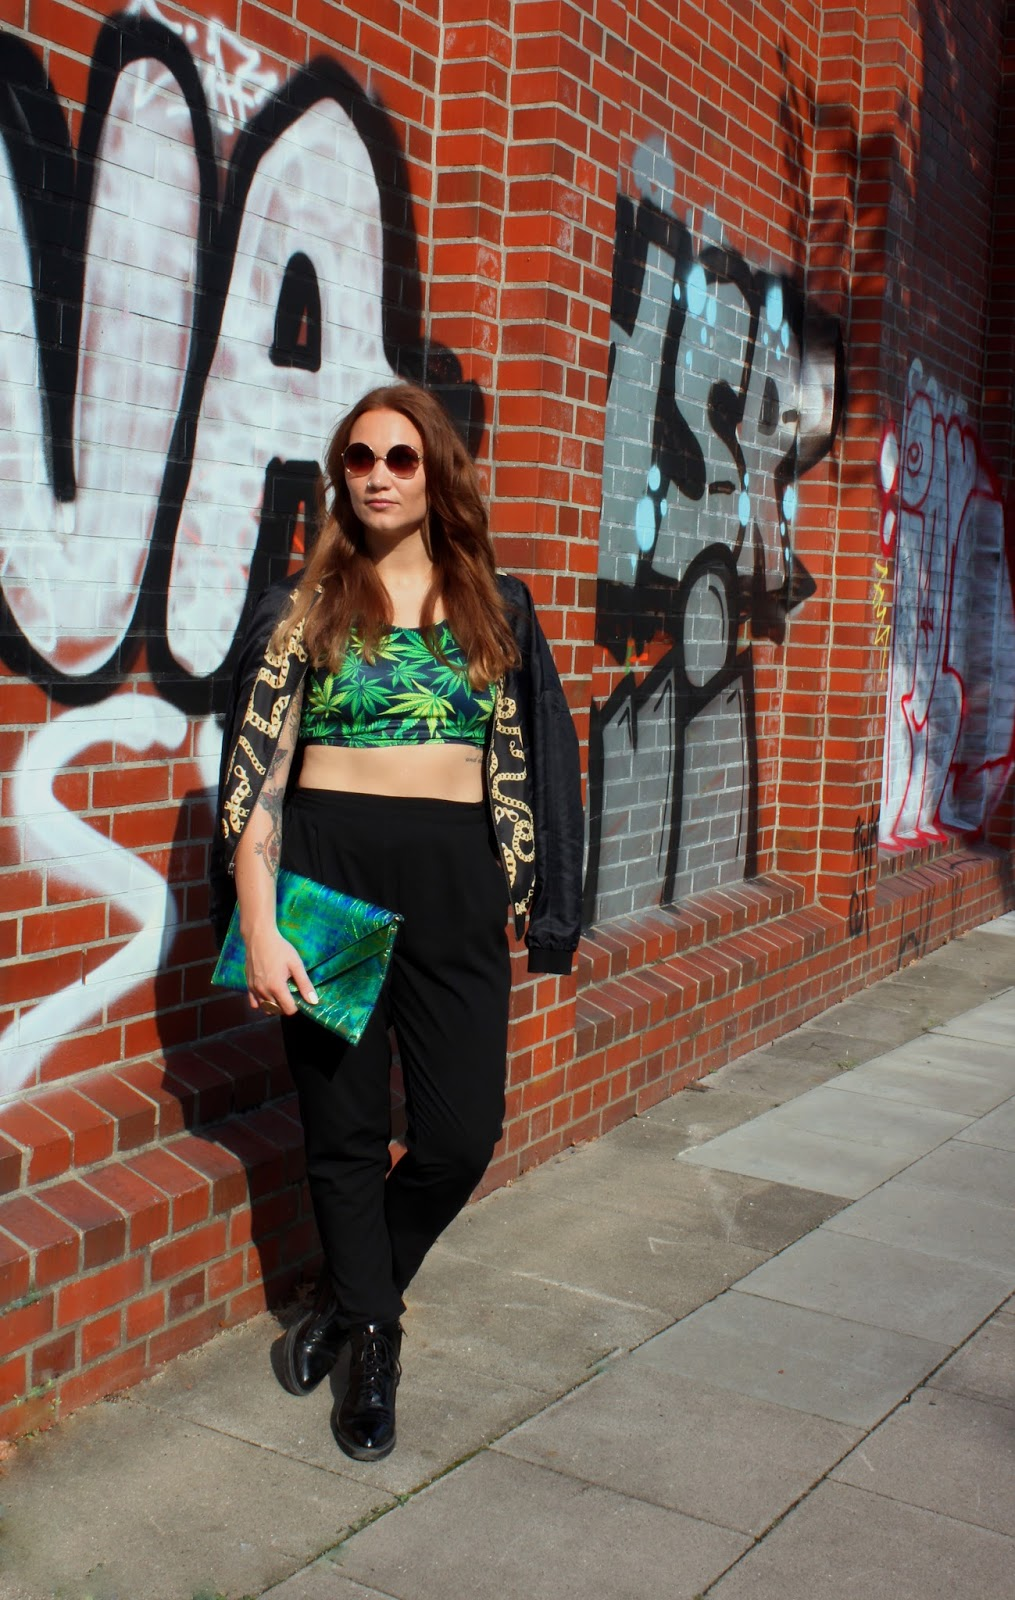 Fashion People: Casual, urban and a bit scruffy with a splash of hip hop - Vanessa